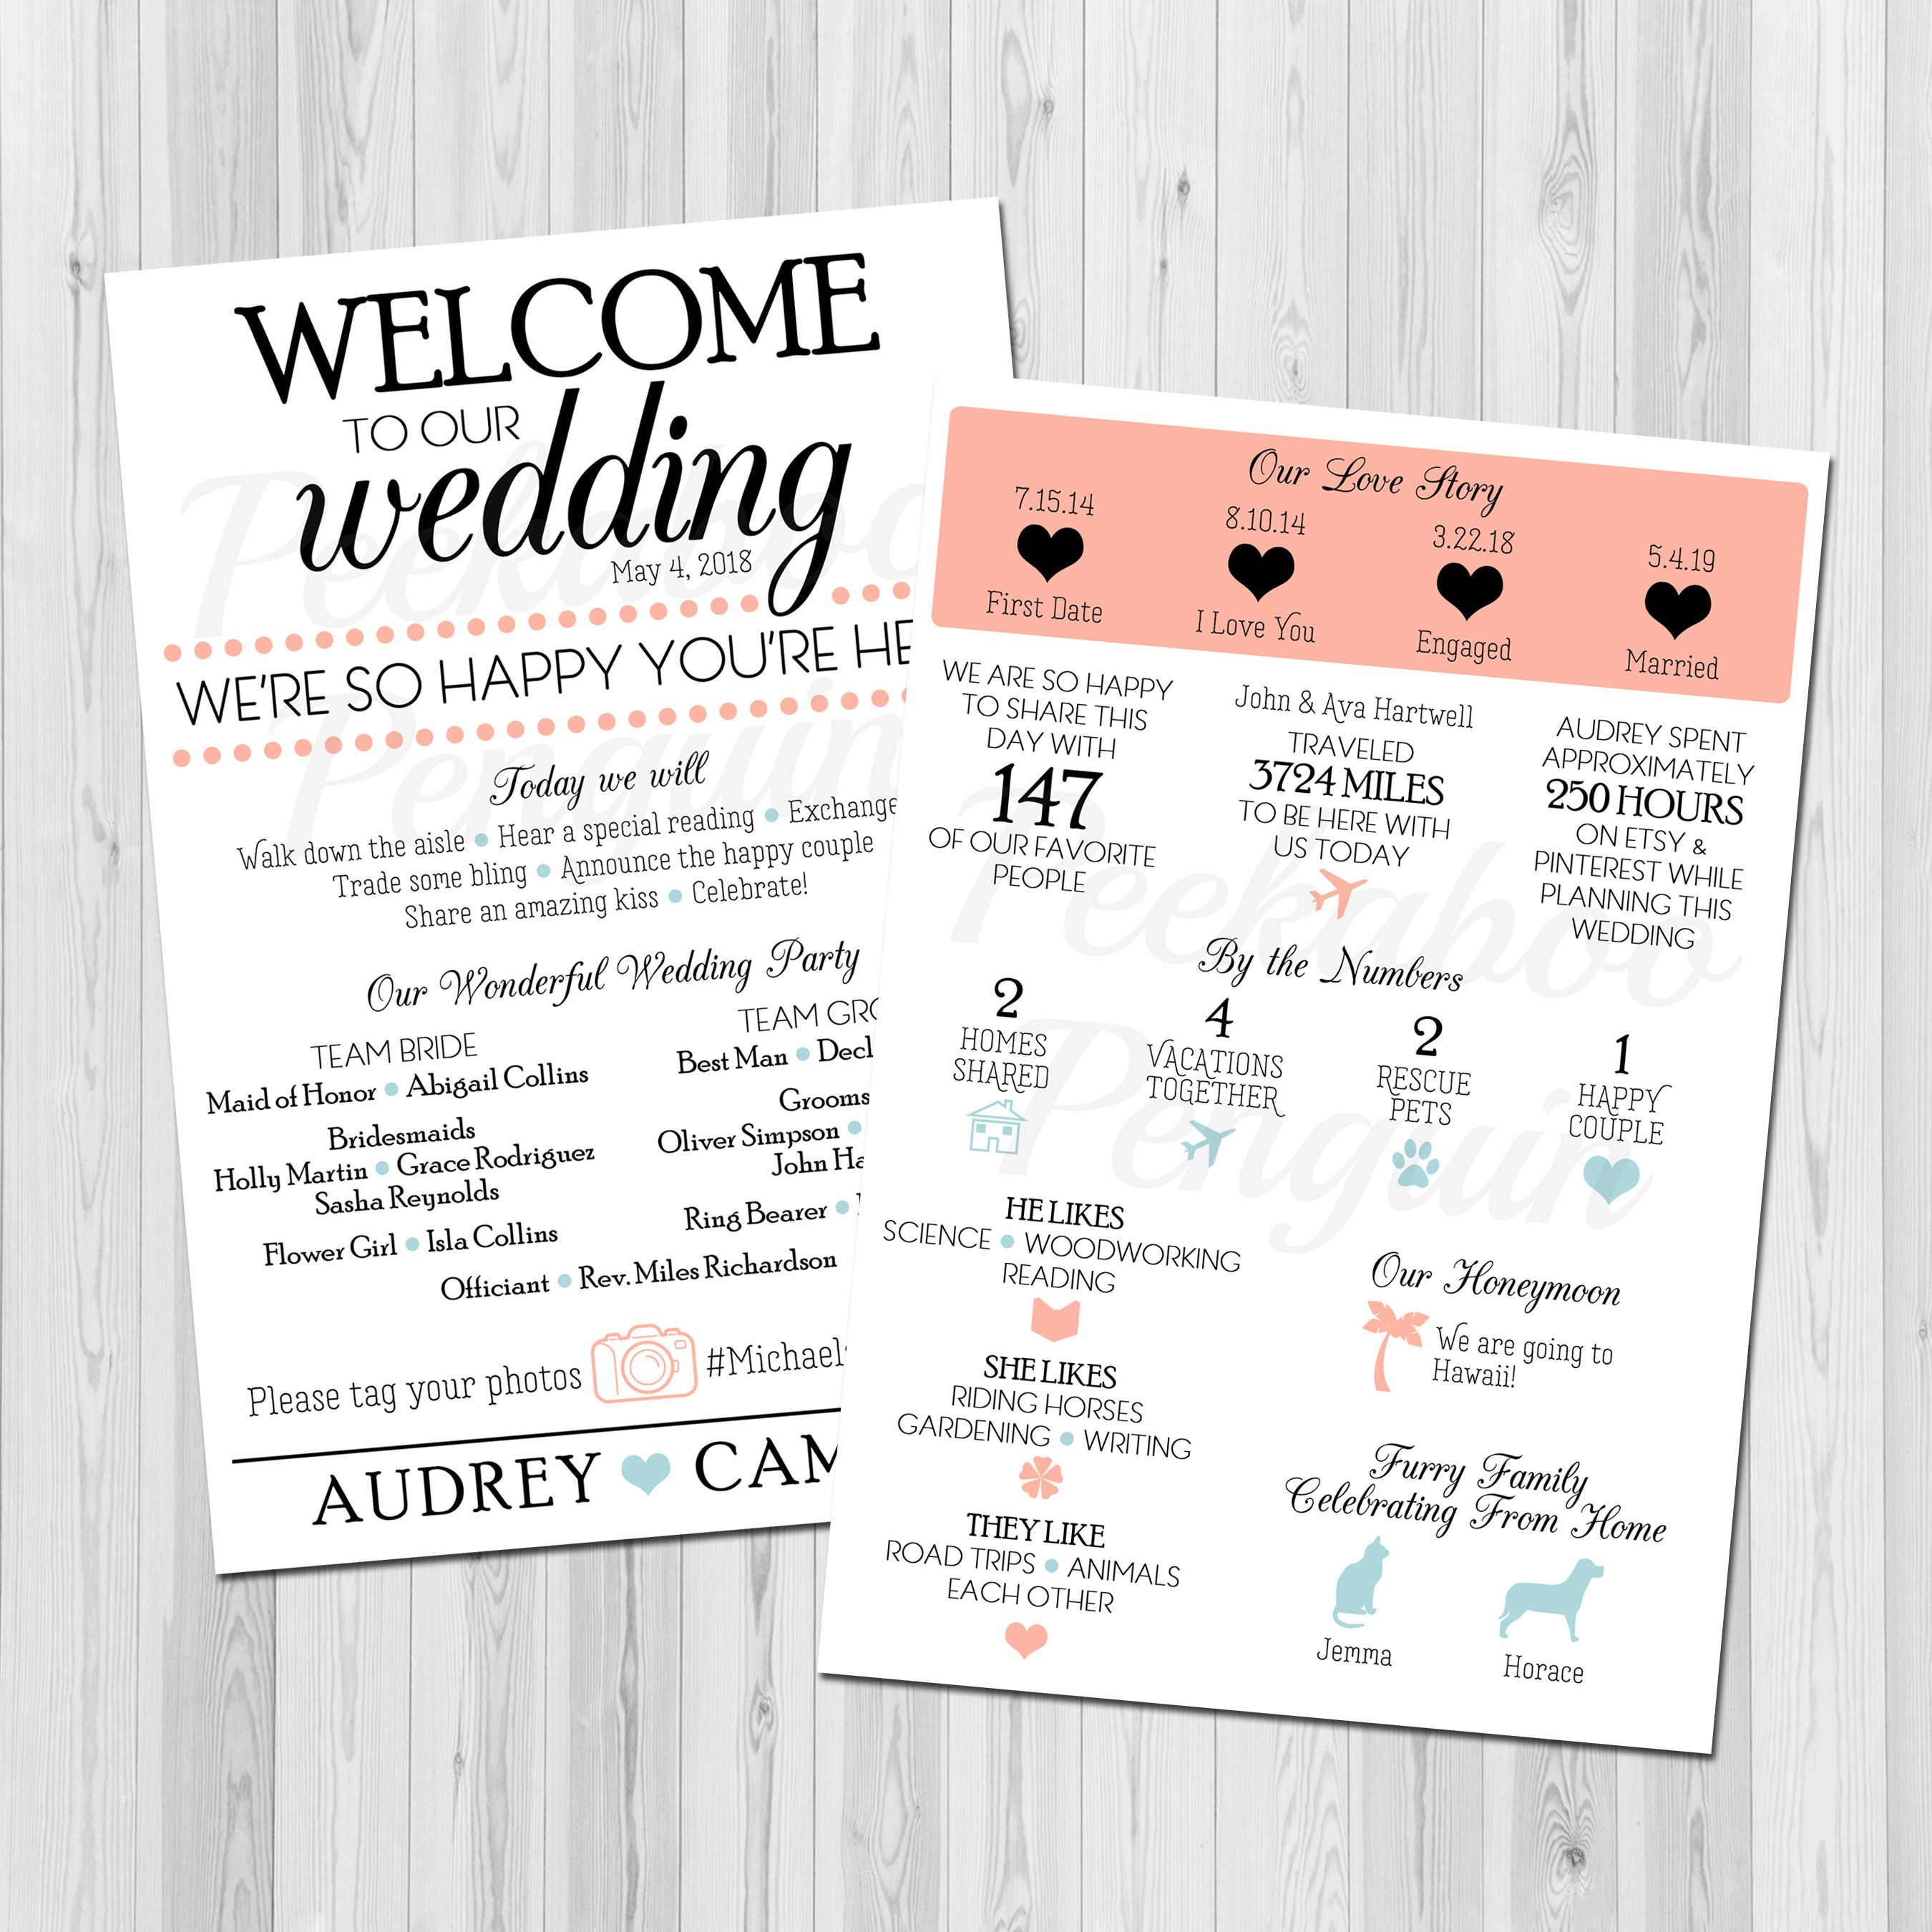 Infographic Wedding Program Creative Wedding Program Blue and Peach Wedding Program Fun Facts Program Printable Program Unique Program